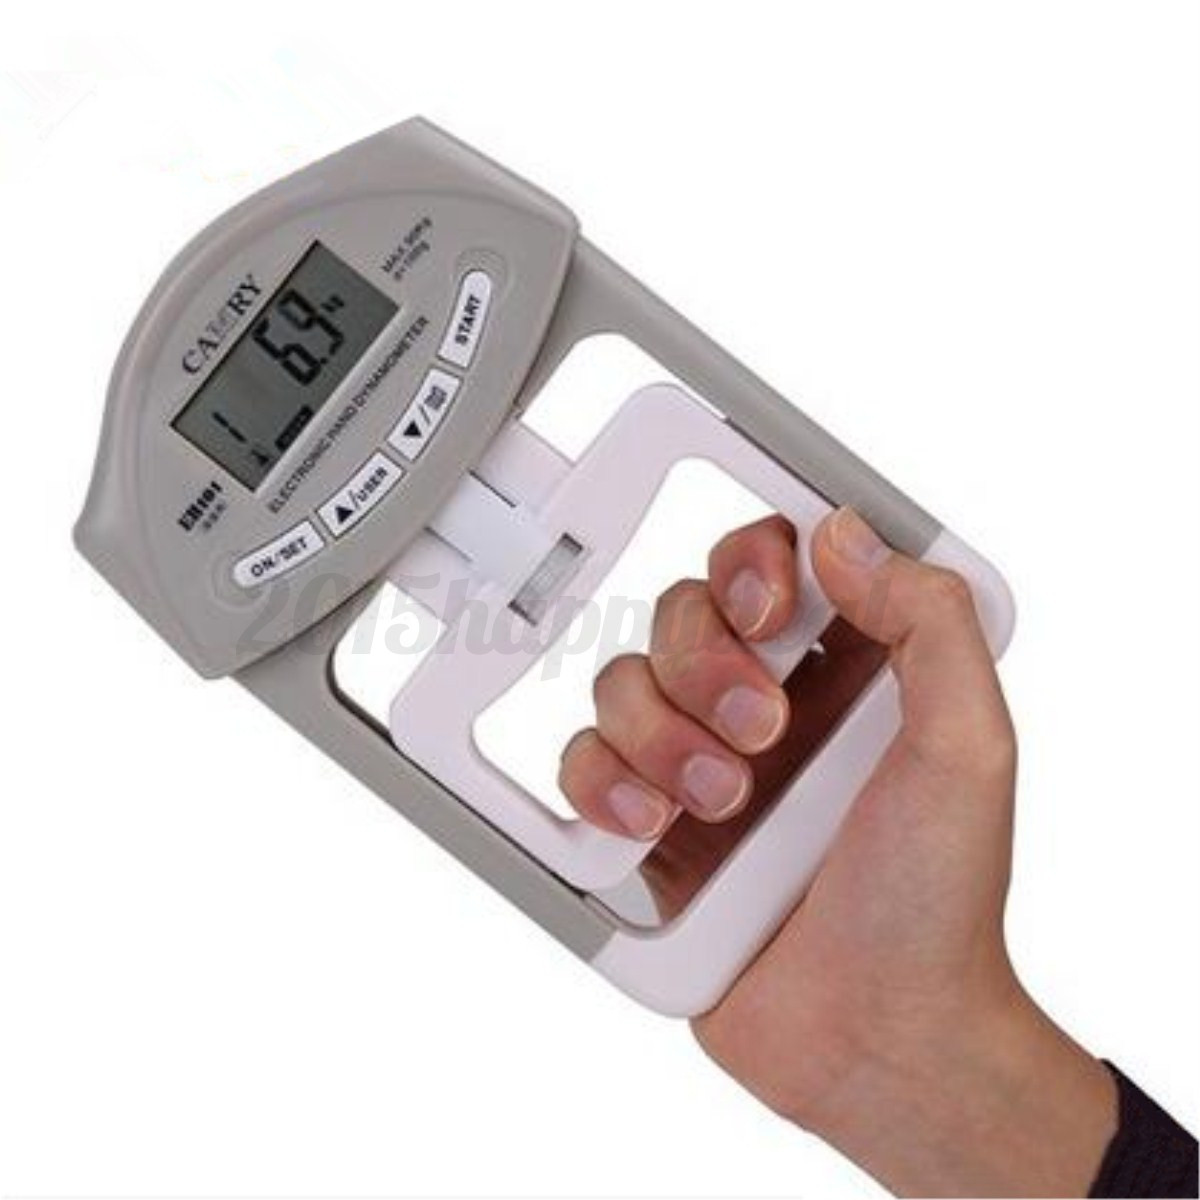 Hand Grip Dynamometer : Lbs kg electronic hand grip strength dynamometer